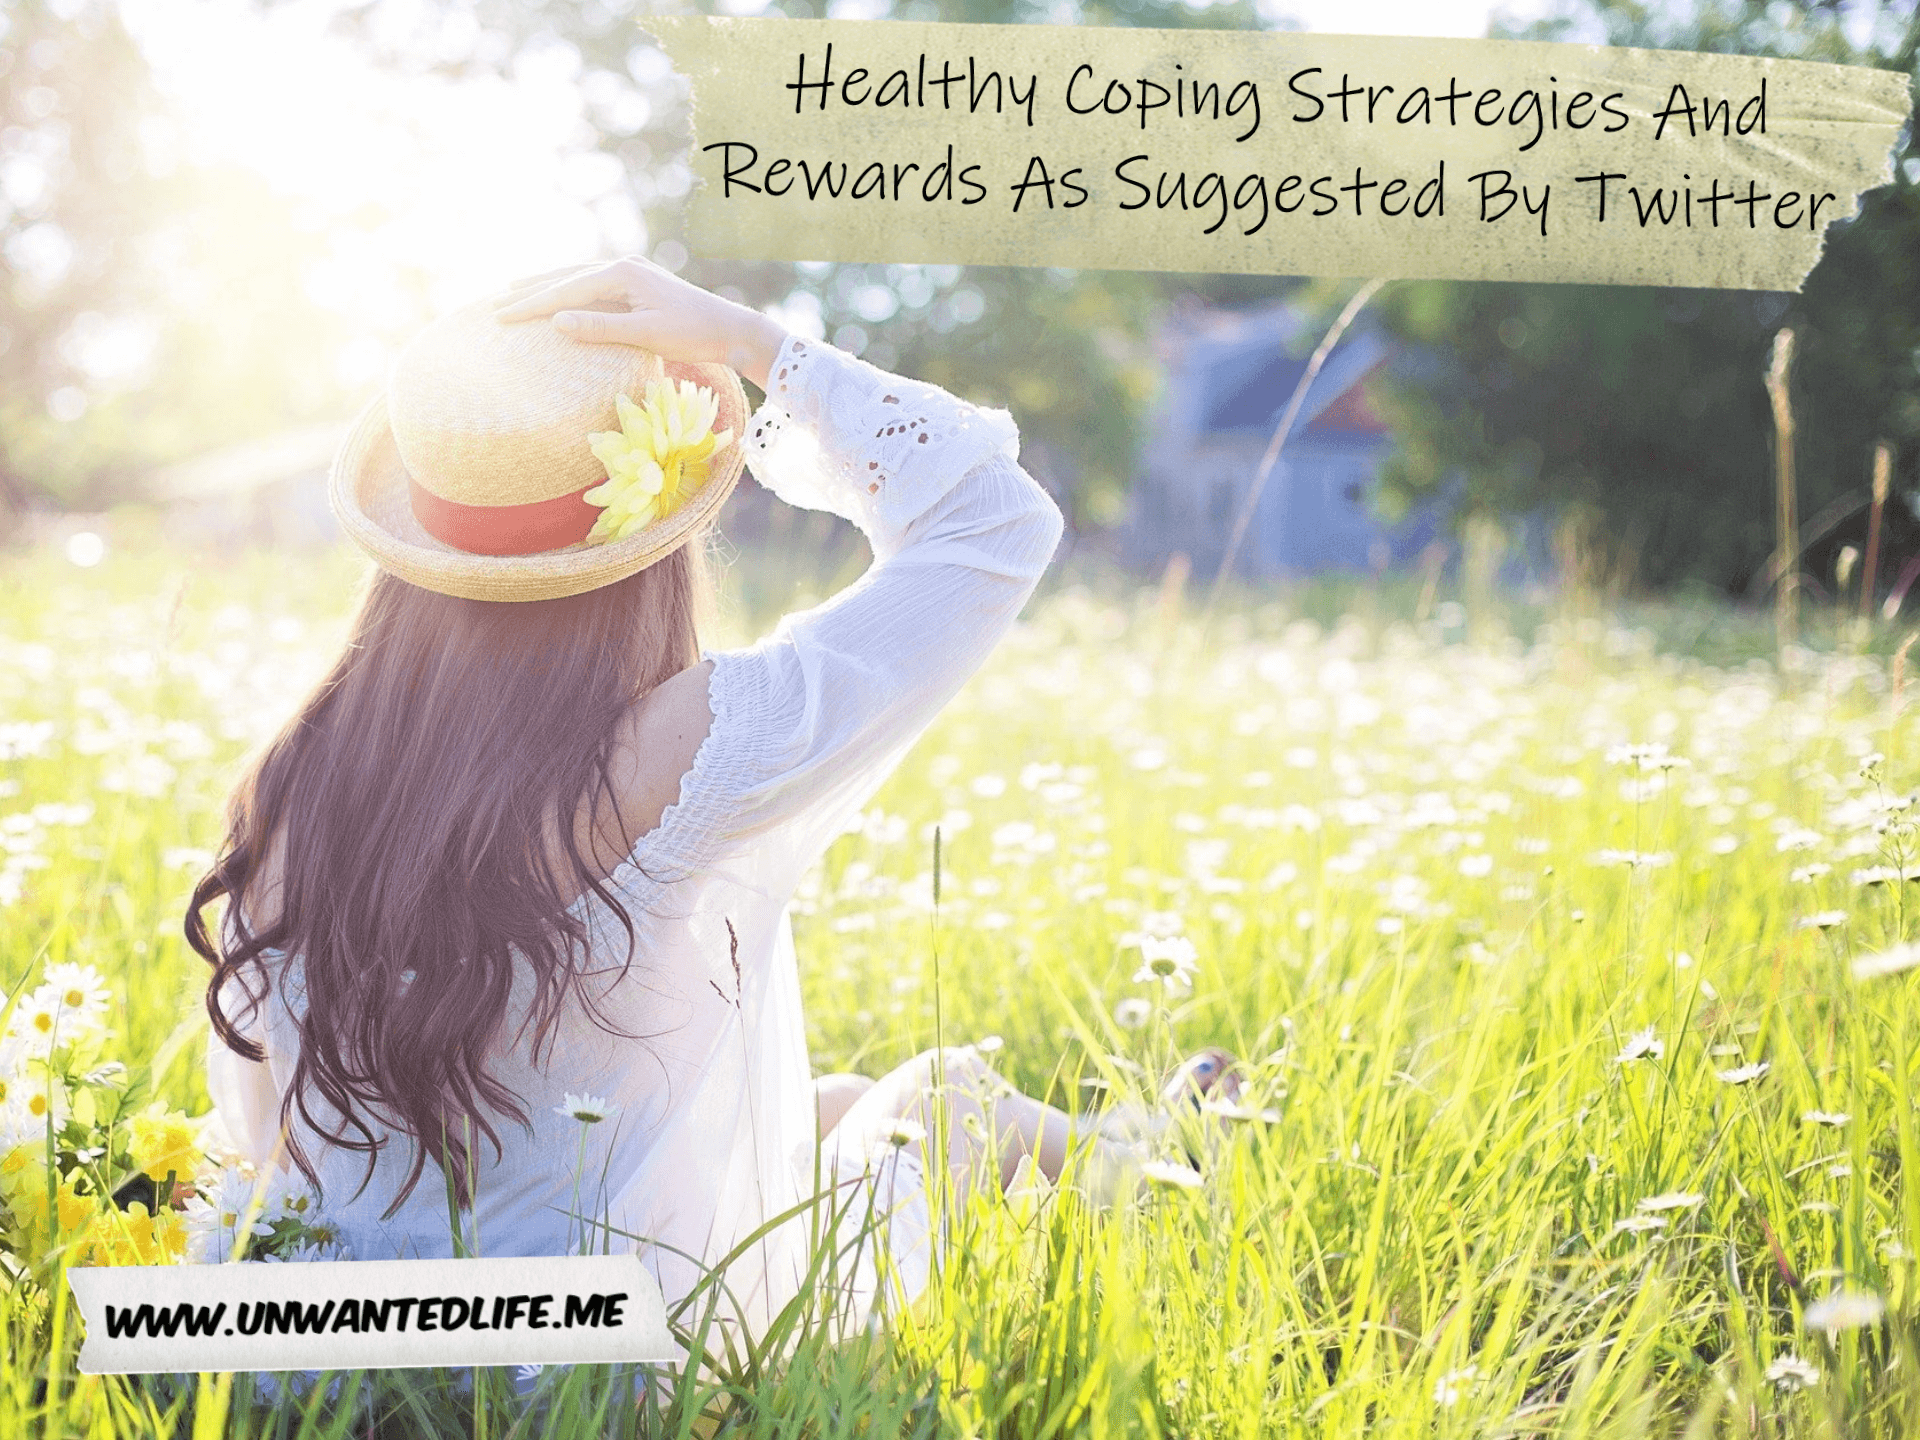 "A woman wearing a summer hat sitting in a meadow. In the top right corner of the image is the title of the article ""Healthy Coping Strategies And Rewards As Suggested By Twitter"""